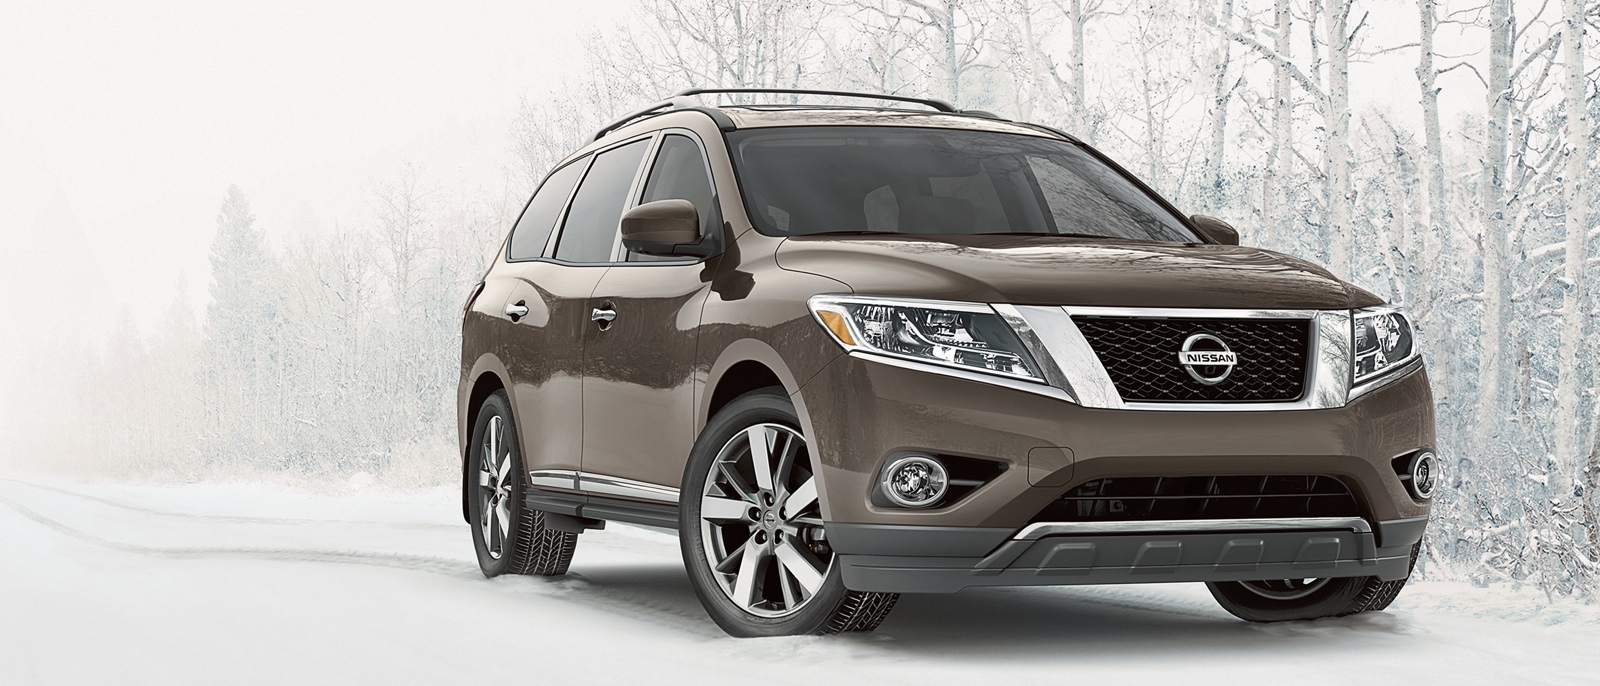 2014 Nissan Rogue Interior >> 2015 Nissan Pathfinder Indianapolis Plainfield